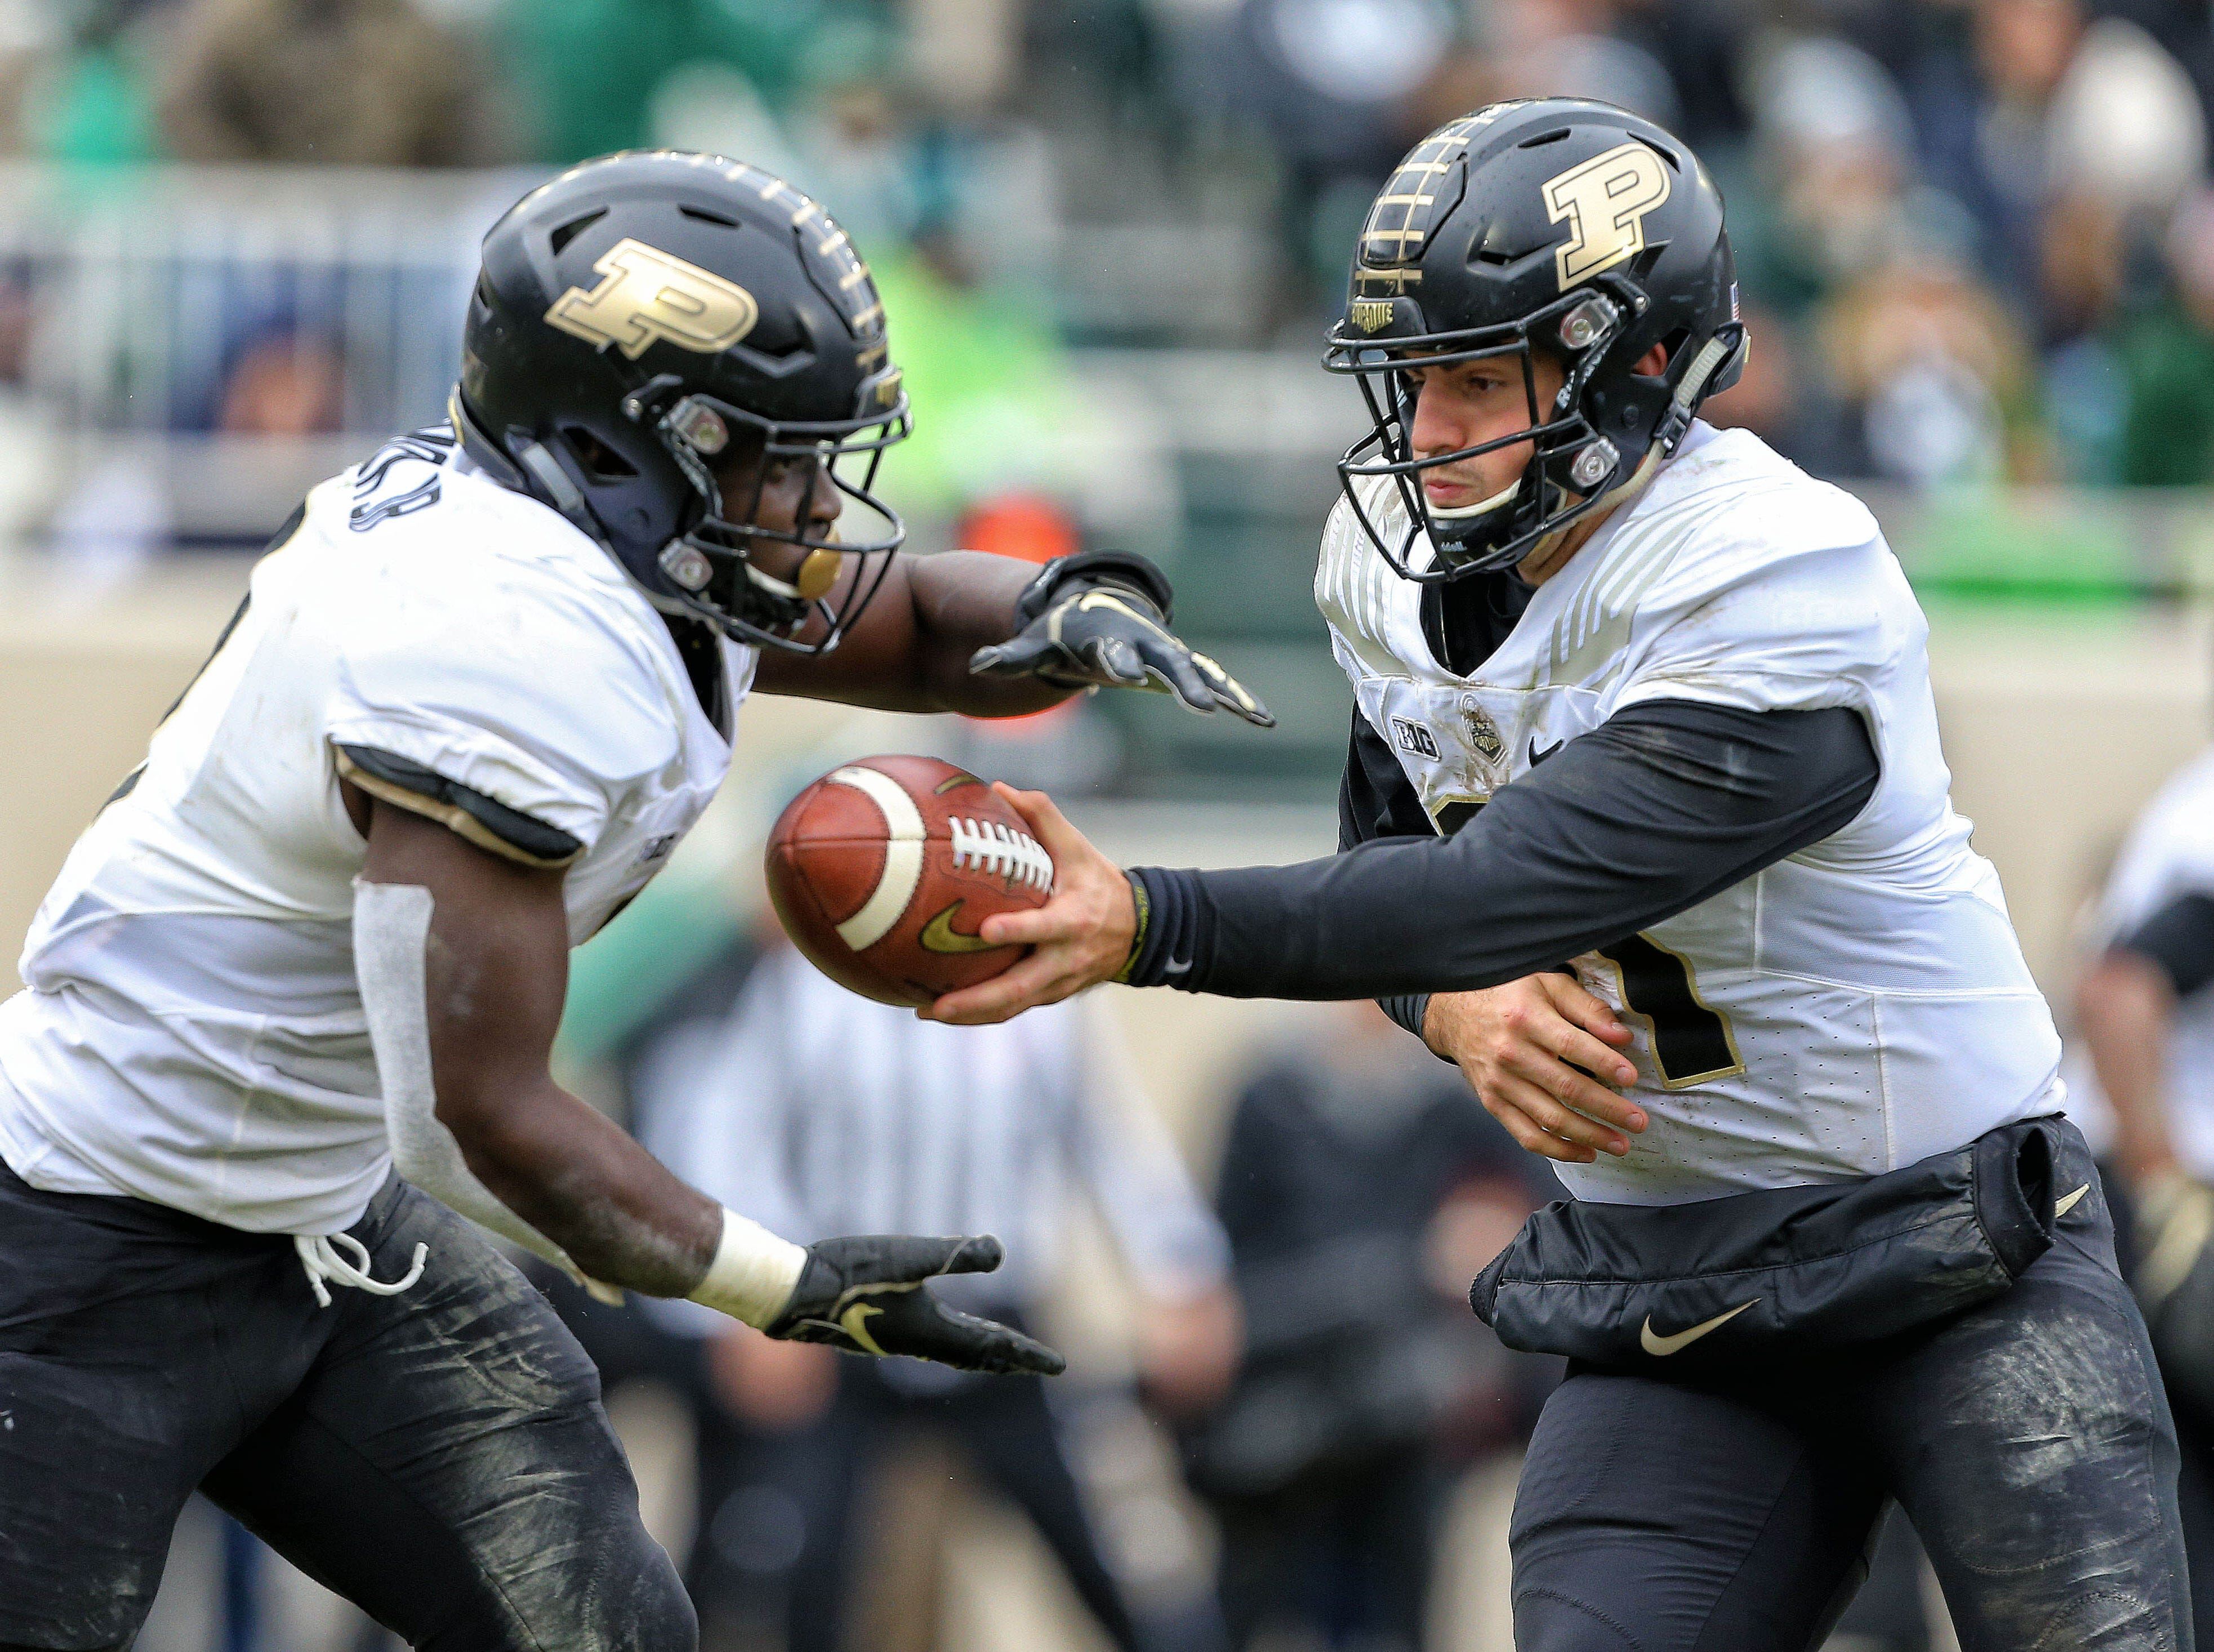 Oct 27, 2018; East Lansing, MI, USA; Purdue Boilermakers quarterback David Blough (11) hands the ball off to Purdue Boilermakers running back D.J. Knox (1) during the second half of a game at Spartan Stadium. Mandatory Credit: Mike Carter-USA TODAY Sports